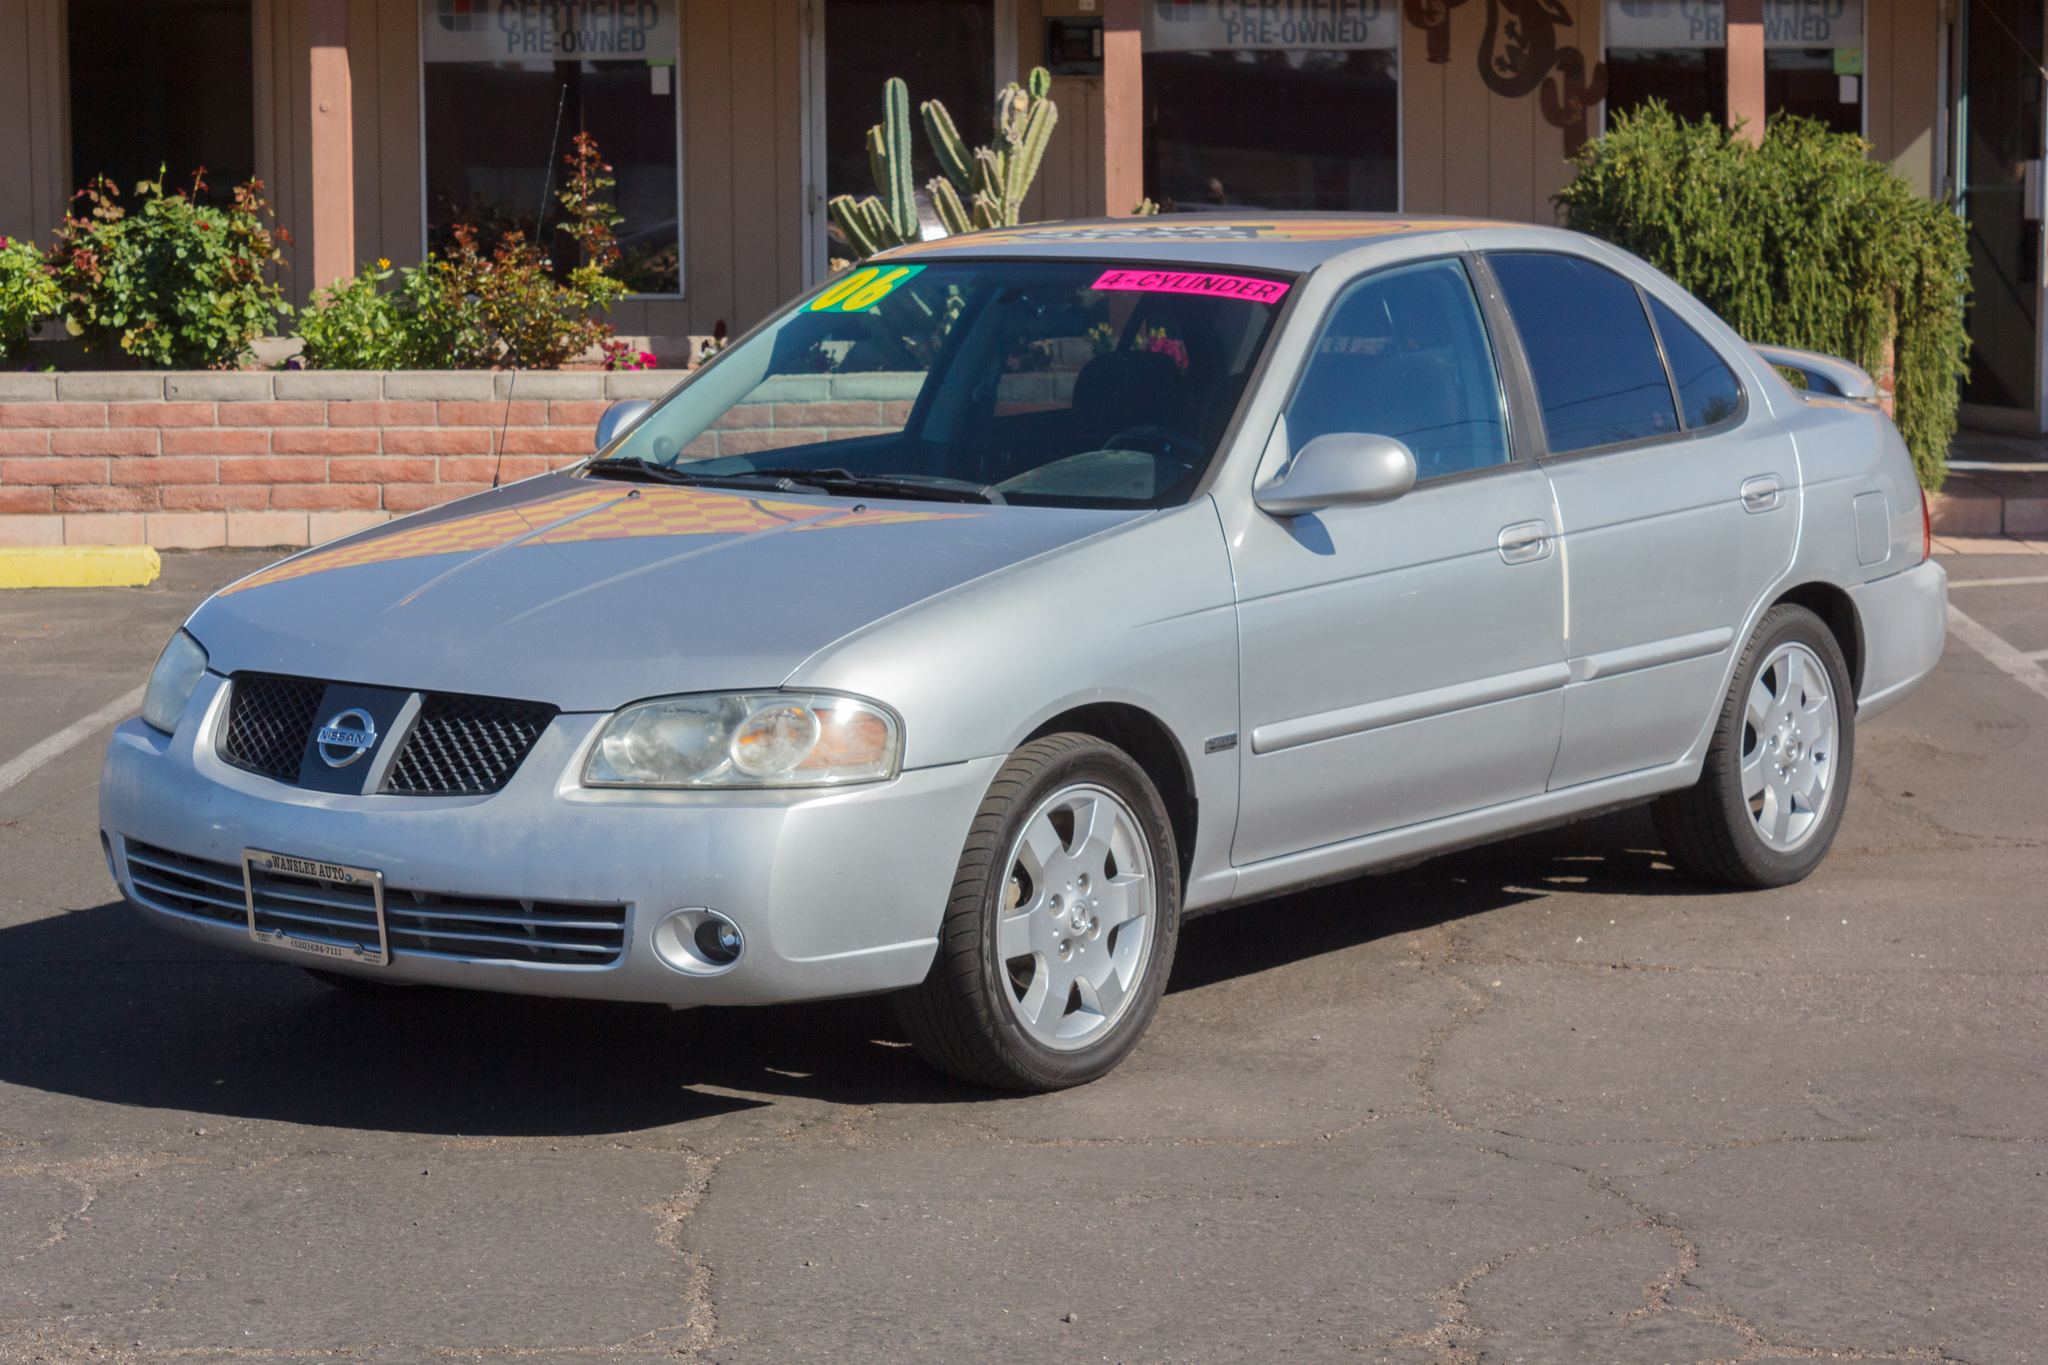 Photo of 2006 Nissan Sentra 4d Sedan 1.8 S Auto Bronze Shimmer Clearcoat